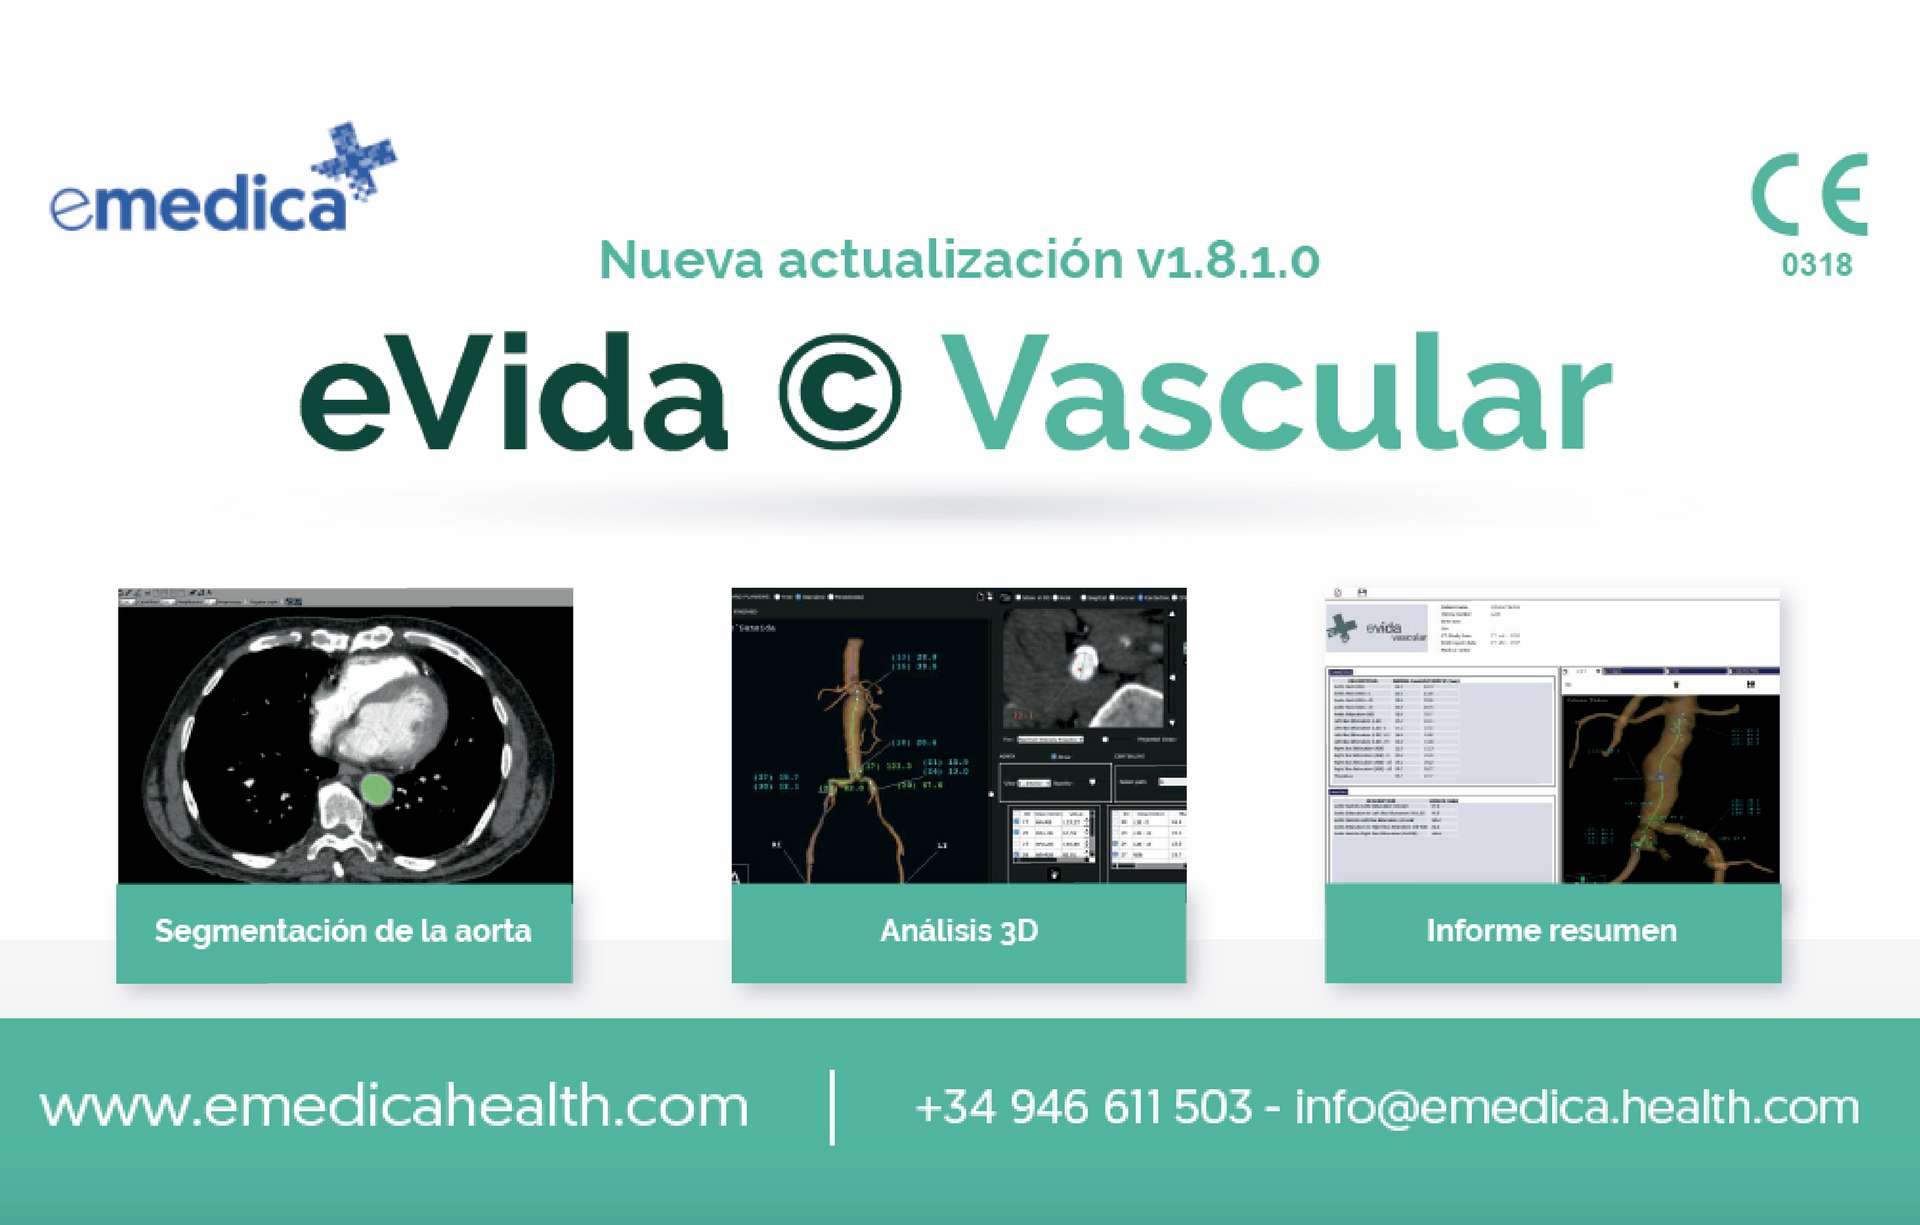 New update for eVida©Vascular: improving the user experience